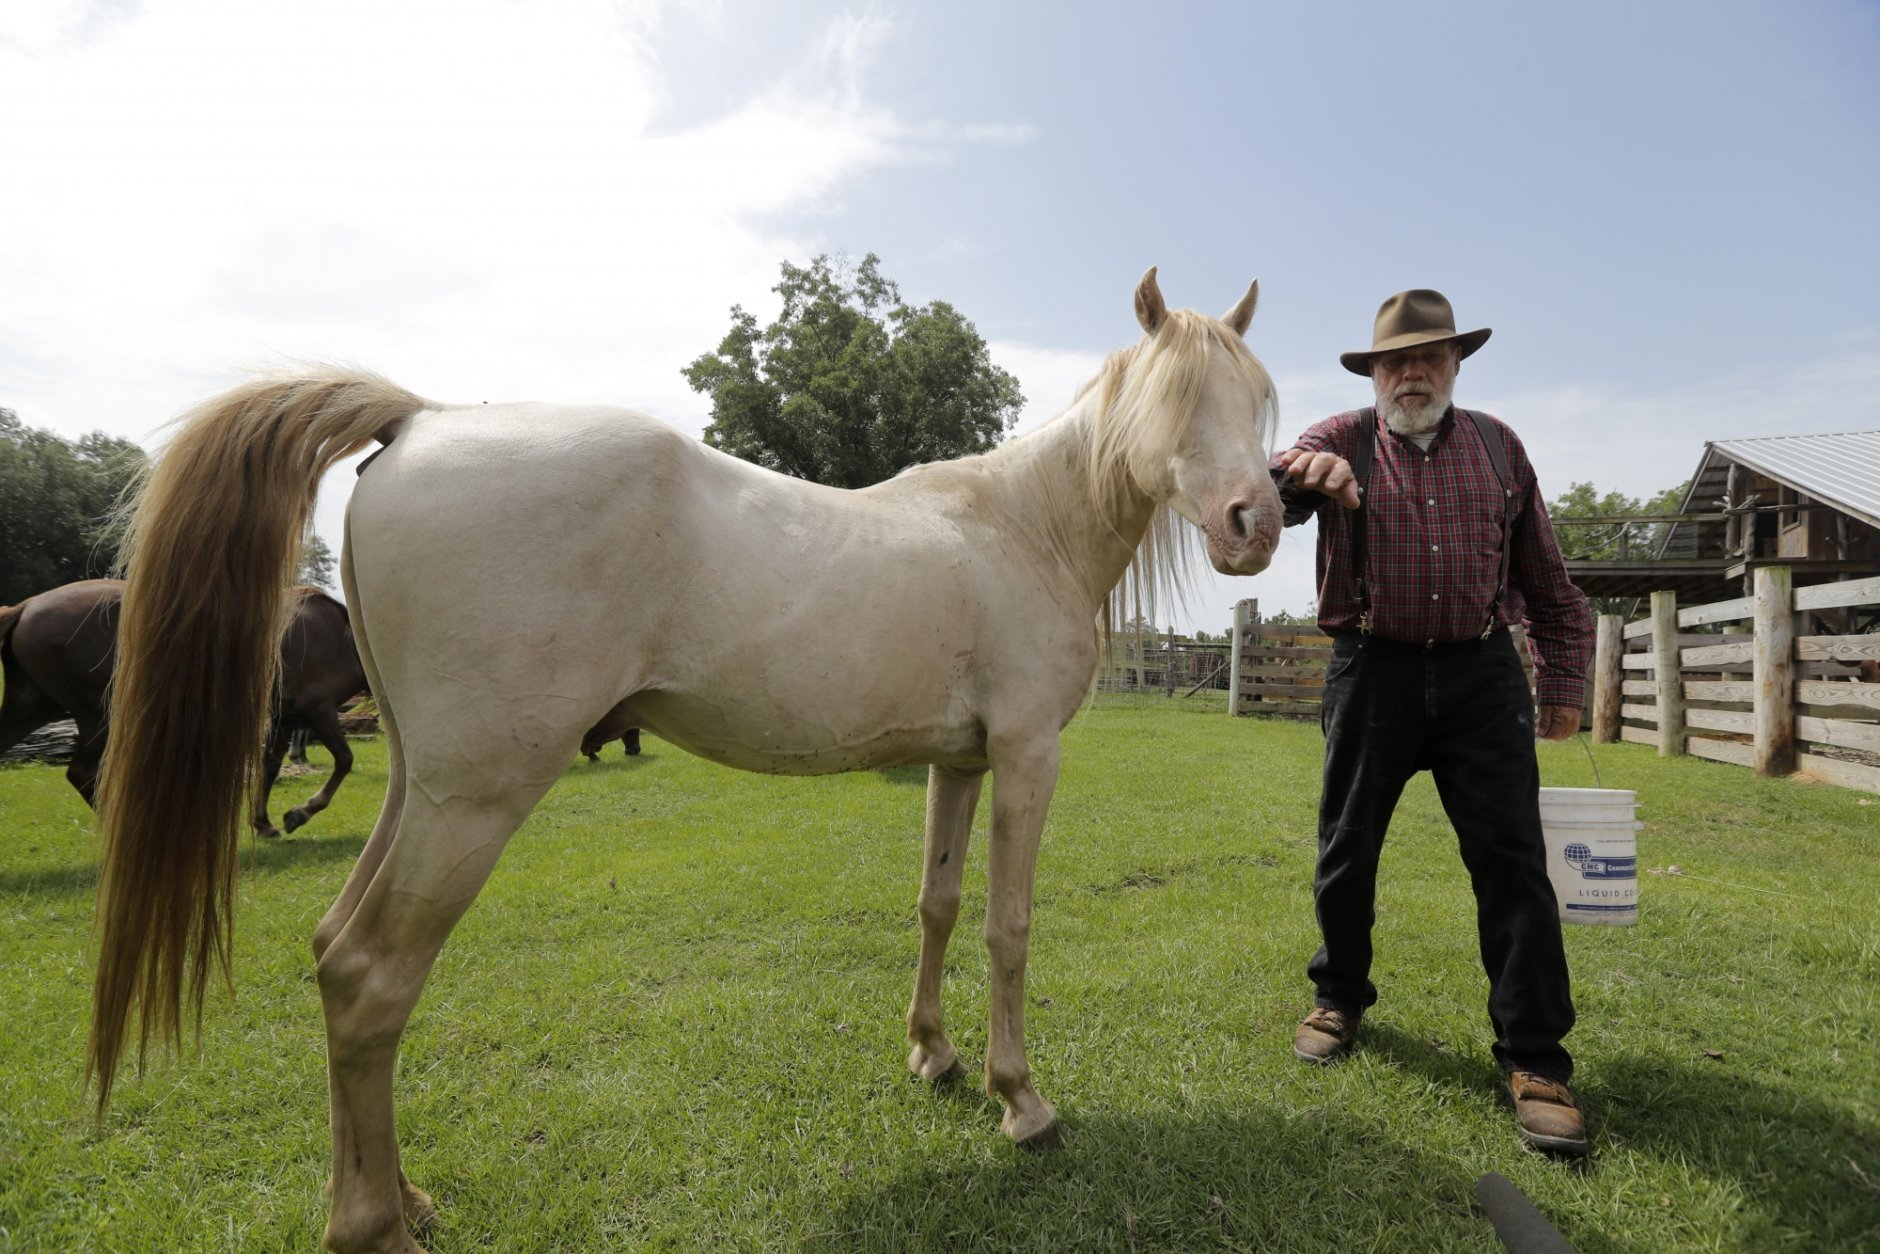 In this July 17, 2018, photo, Bill Frank Brown pets DeSoto, a 19-year-old Pine Tacky Stallion, on his farm in Poplarville, Miss. Brown was 14 when he inherited the Poplarville farm that Sponenberg visited in 2005. The farm had been in Brown's family since 1881 and the livestock there, even longer. Brown had three stallions back then, including DeSoto. He called them pine tacky horses. The Texas A&M veterinary school tested samples of the stallions' DNA, and they matched those of Rickman's Choctaws. (AP Photo/Gerald Herbert)